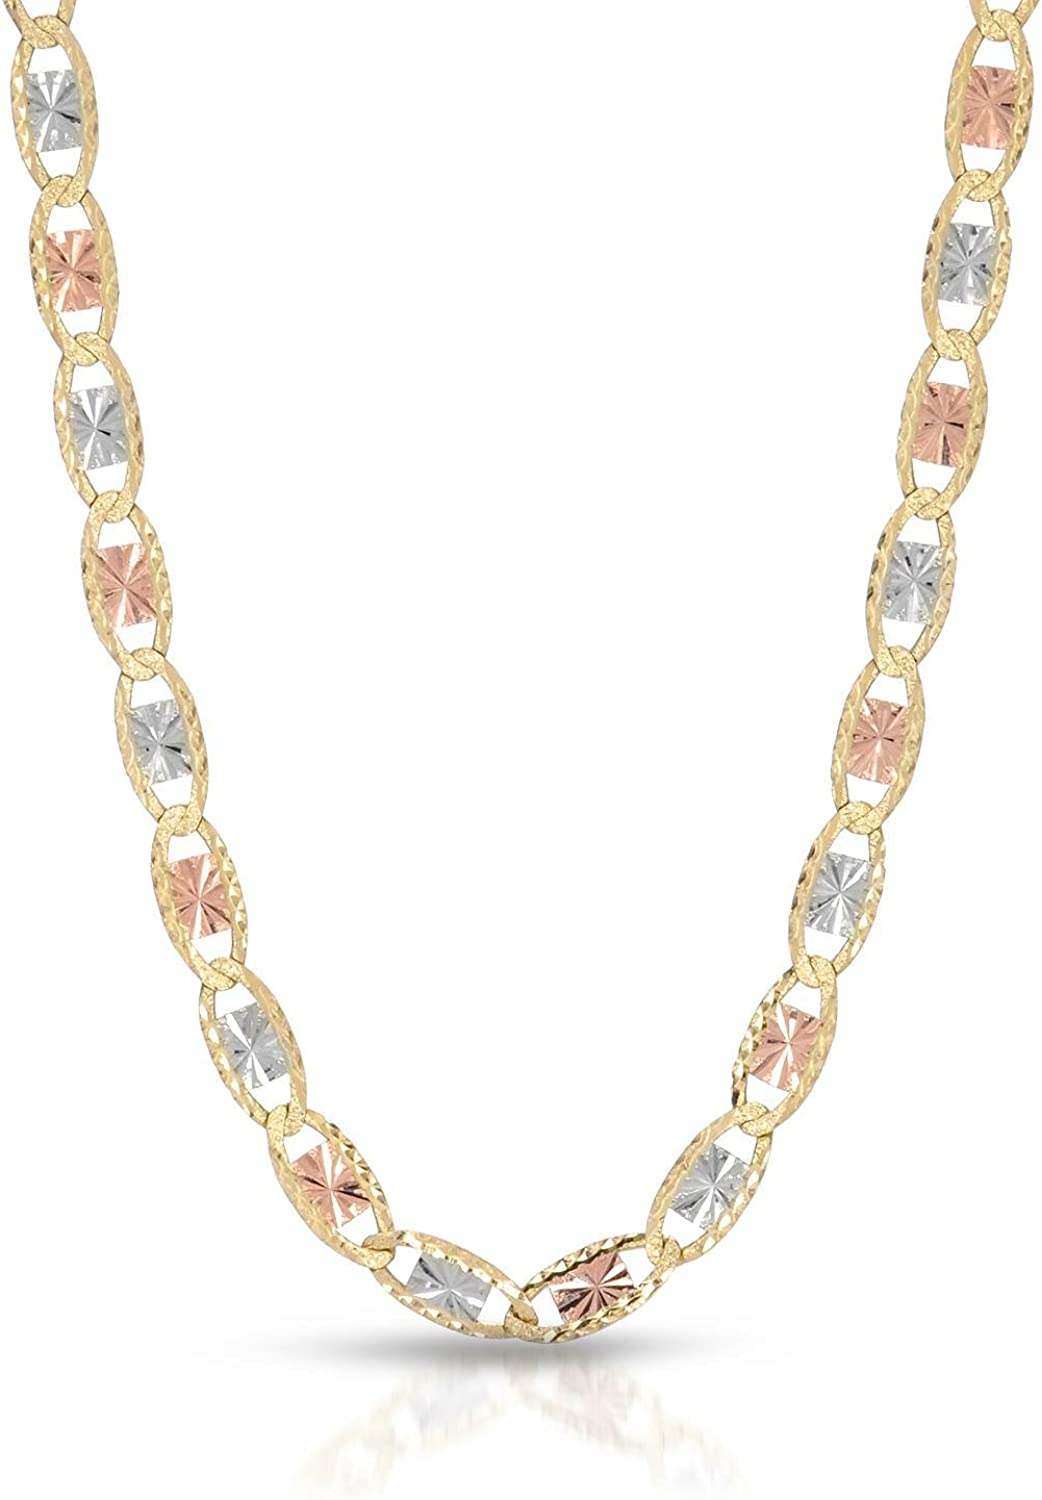 MCS Jewelry 14 Karat Three Tone Yellow Gold/White Gold/Rose Gold Necklace 2 mm Width (16